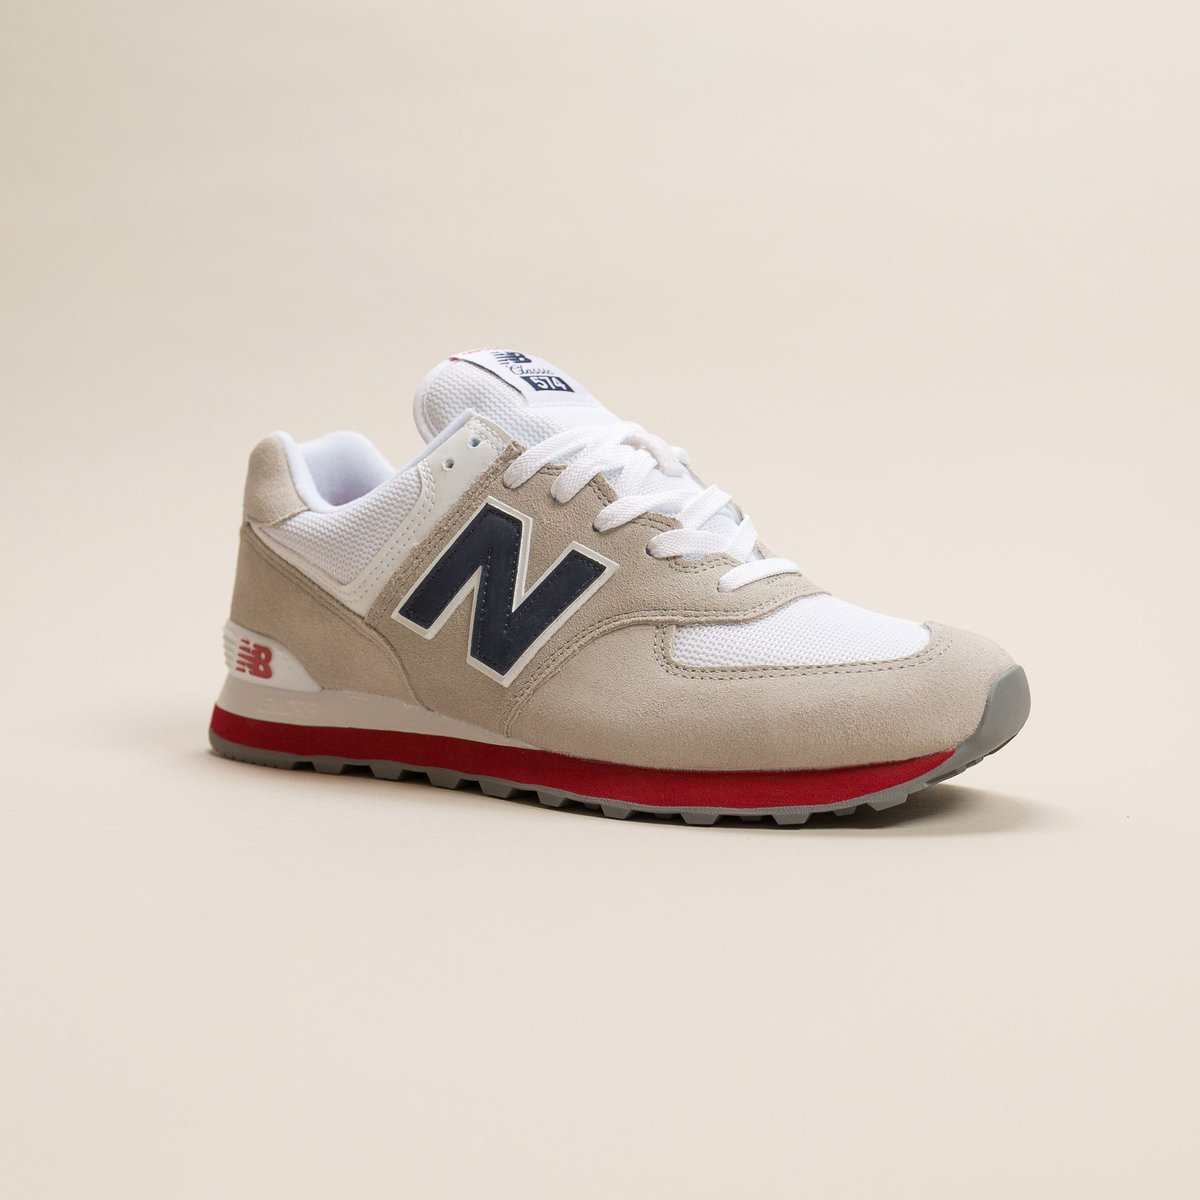 The New Balance 574 Core Plus in gray